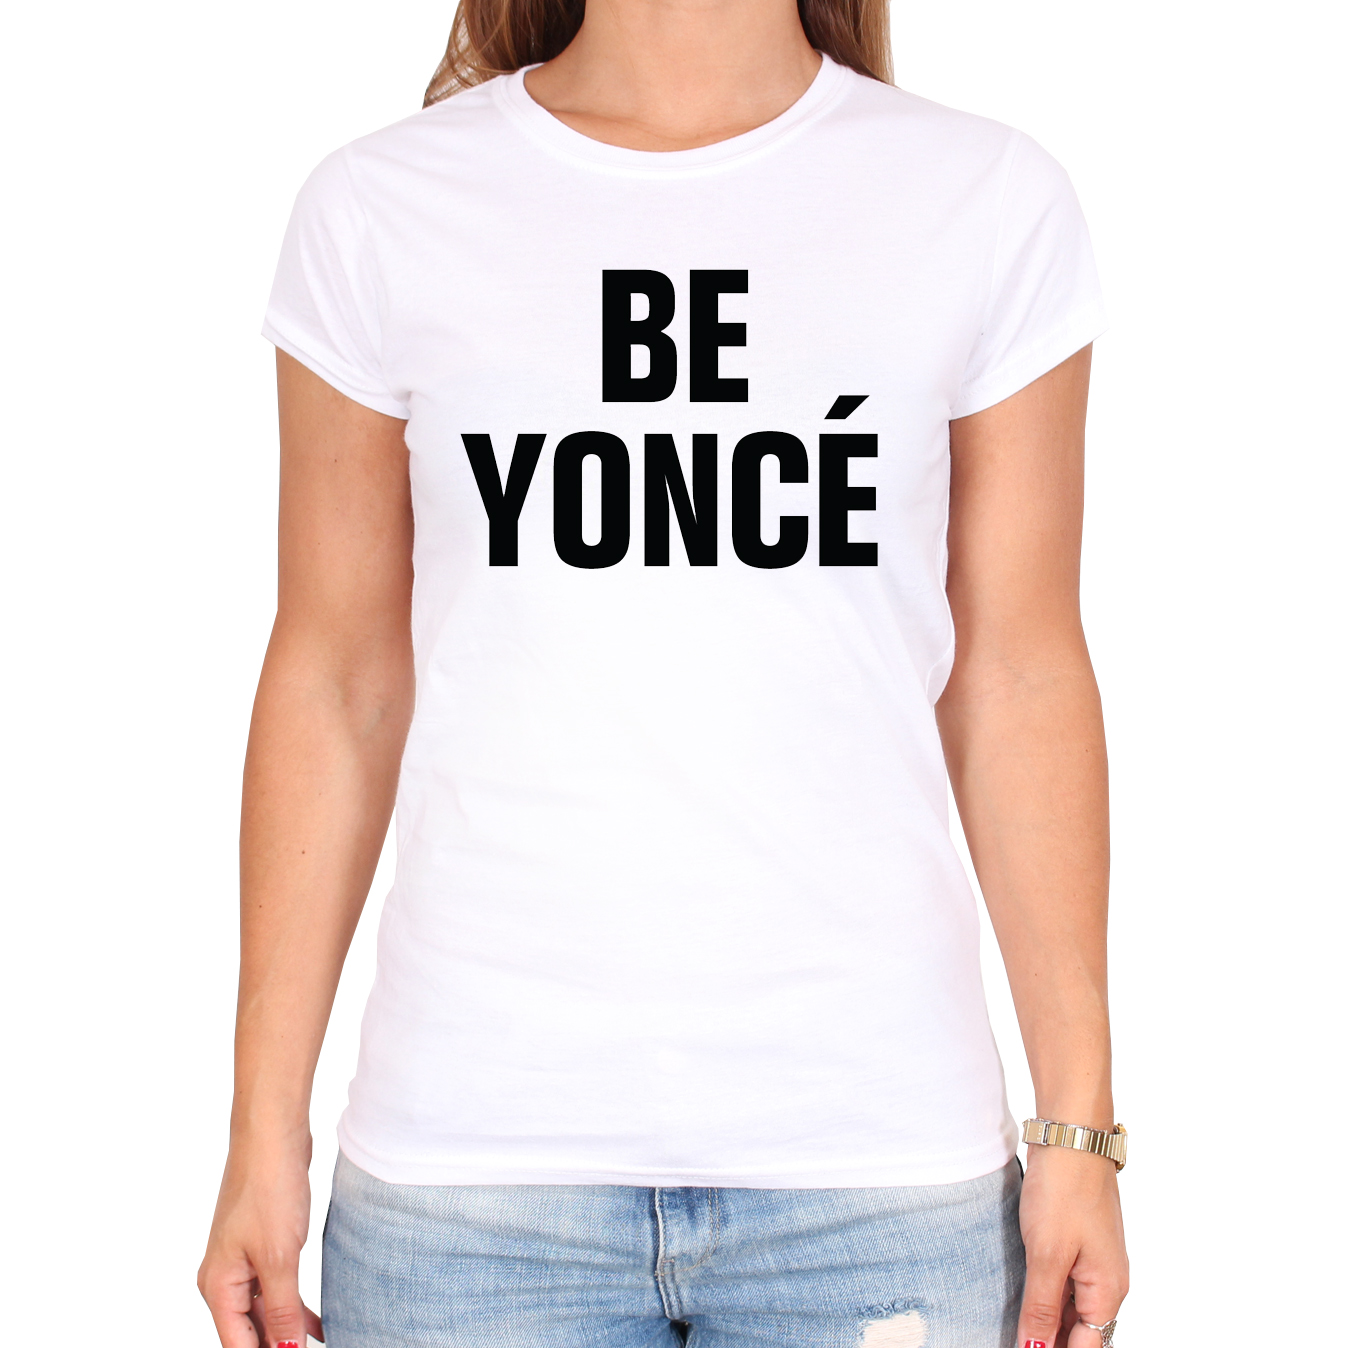 Vintage_Shirts2_weiss_ladies_beyonce